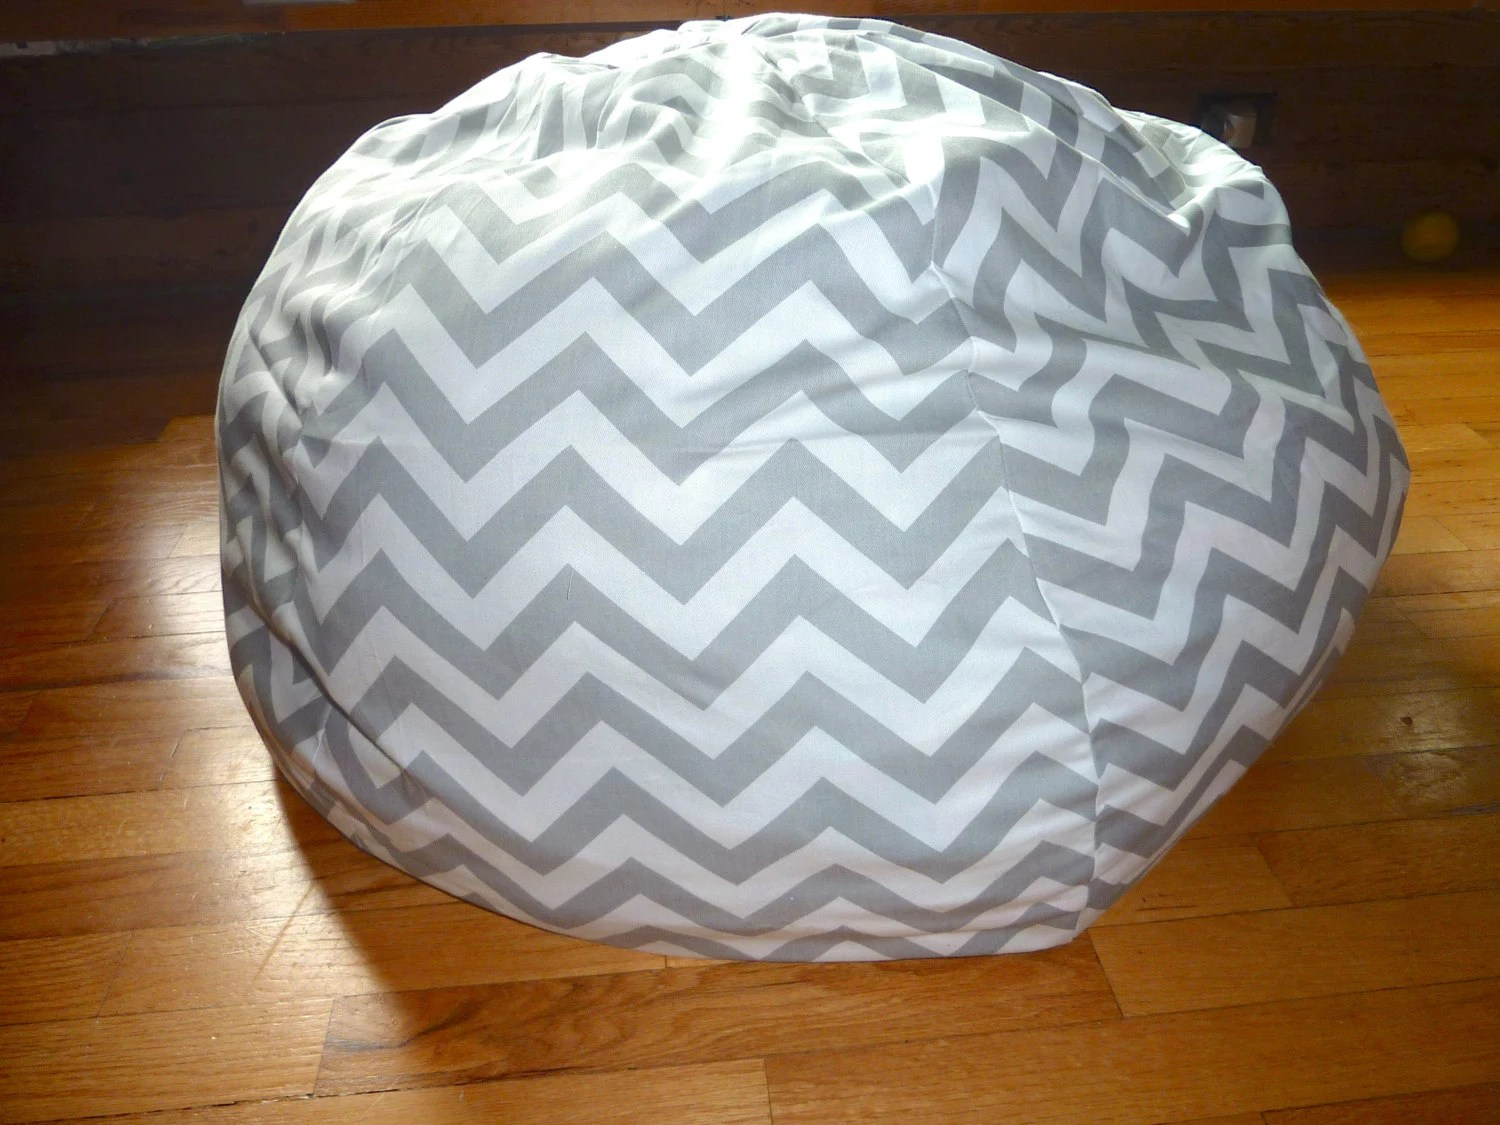 bean bag chair covers ergonomic for sale grey white chevron cover silver gray red etsy image 0